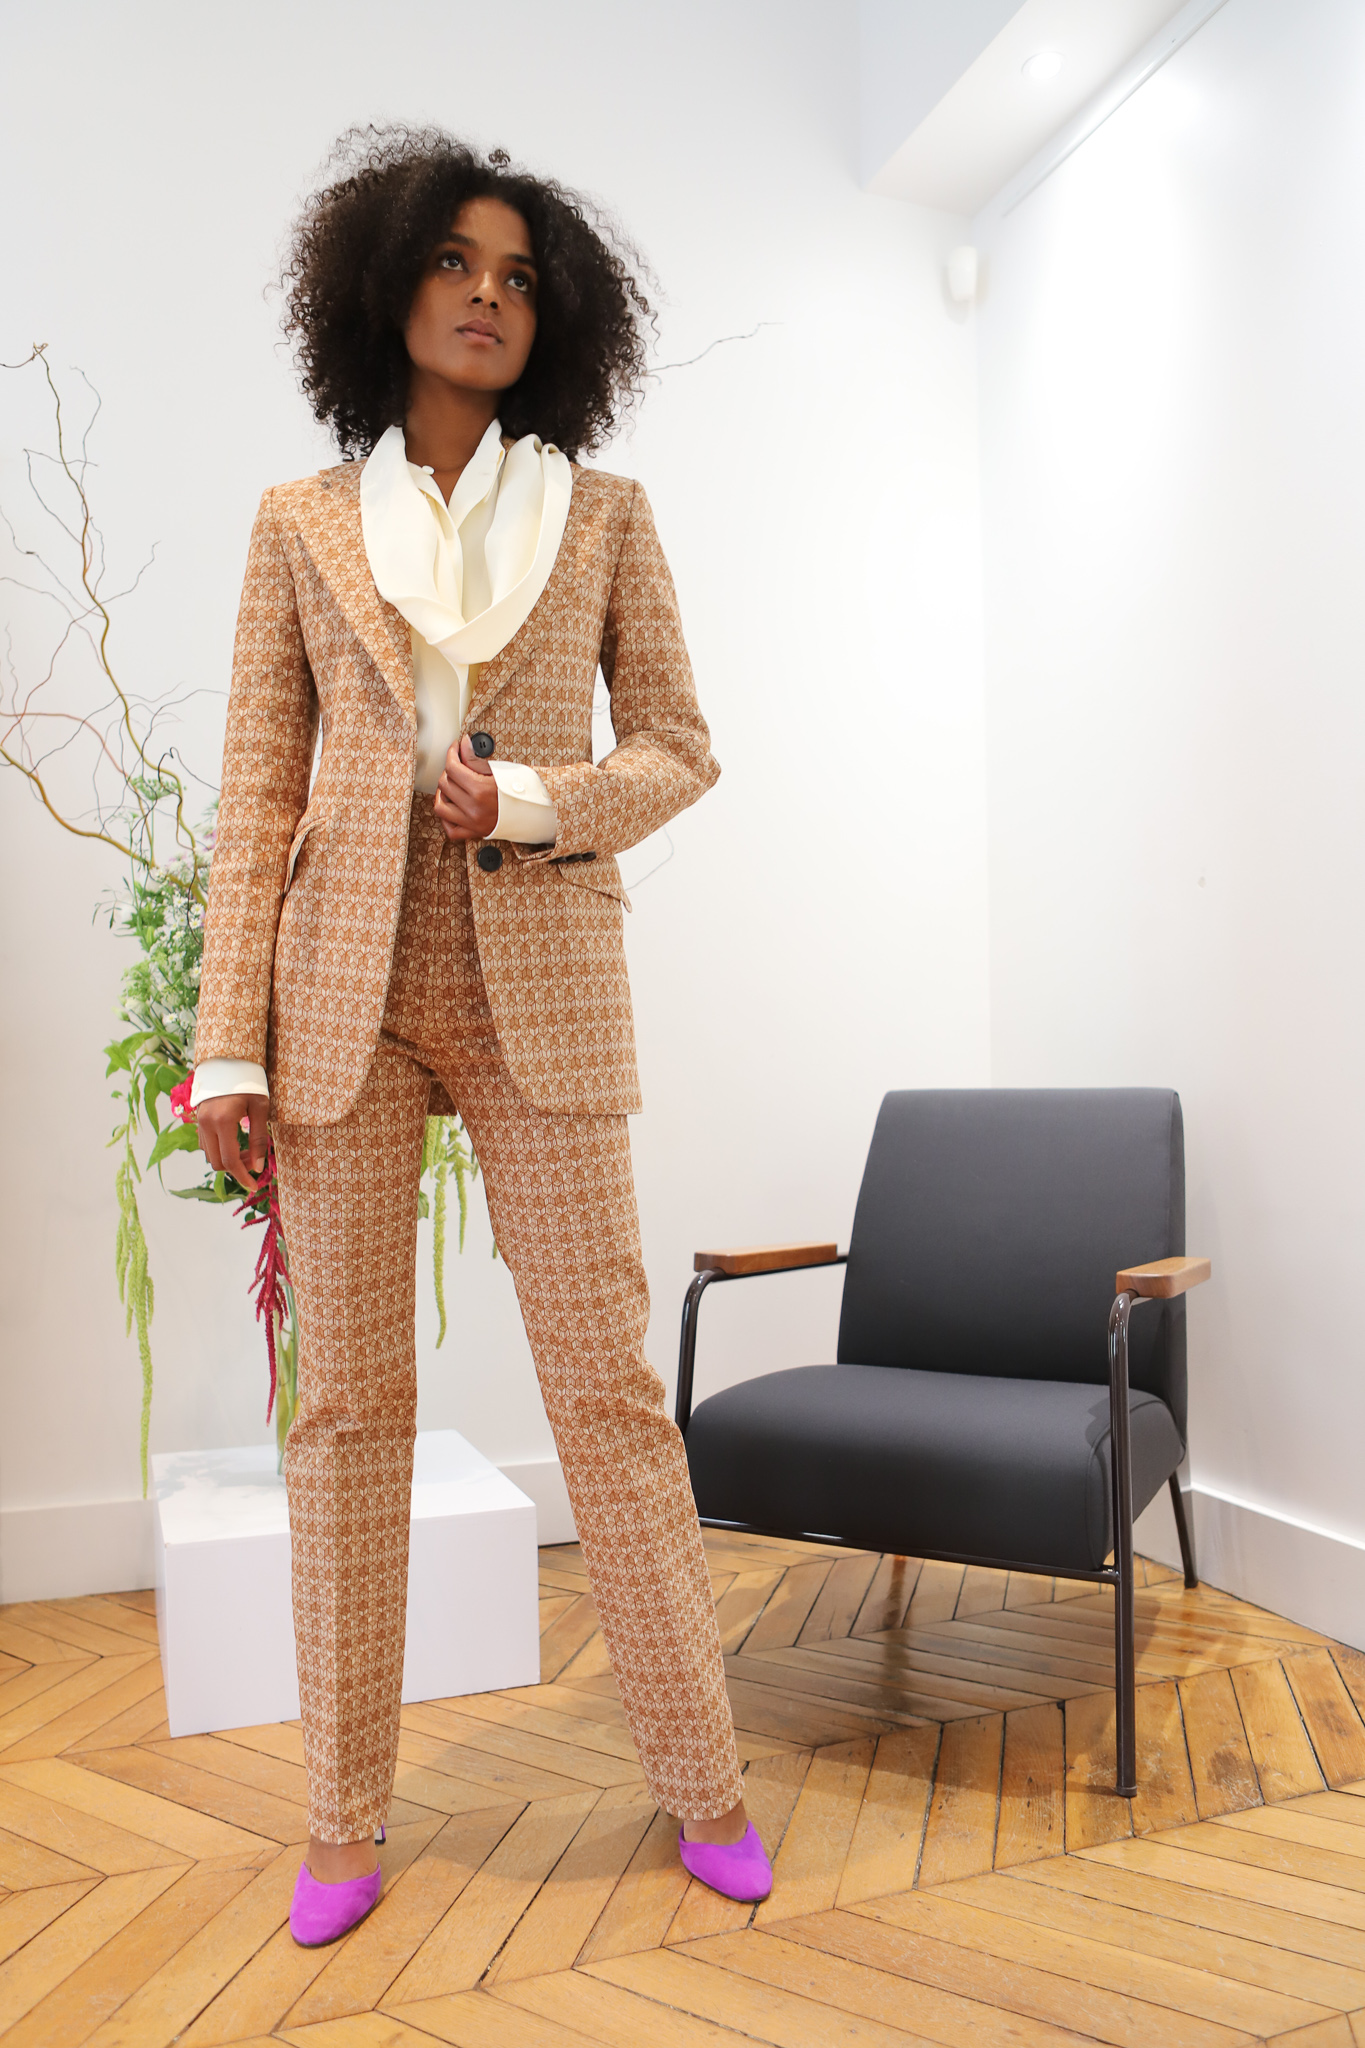 Victor Beckham Scarf Top in White Geometric Pattern Suit in Nude Spring 20 RTW